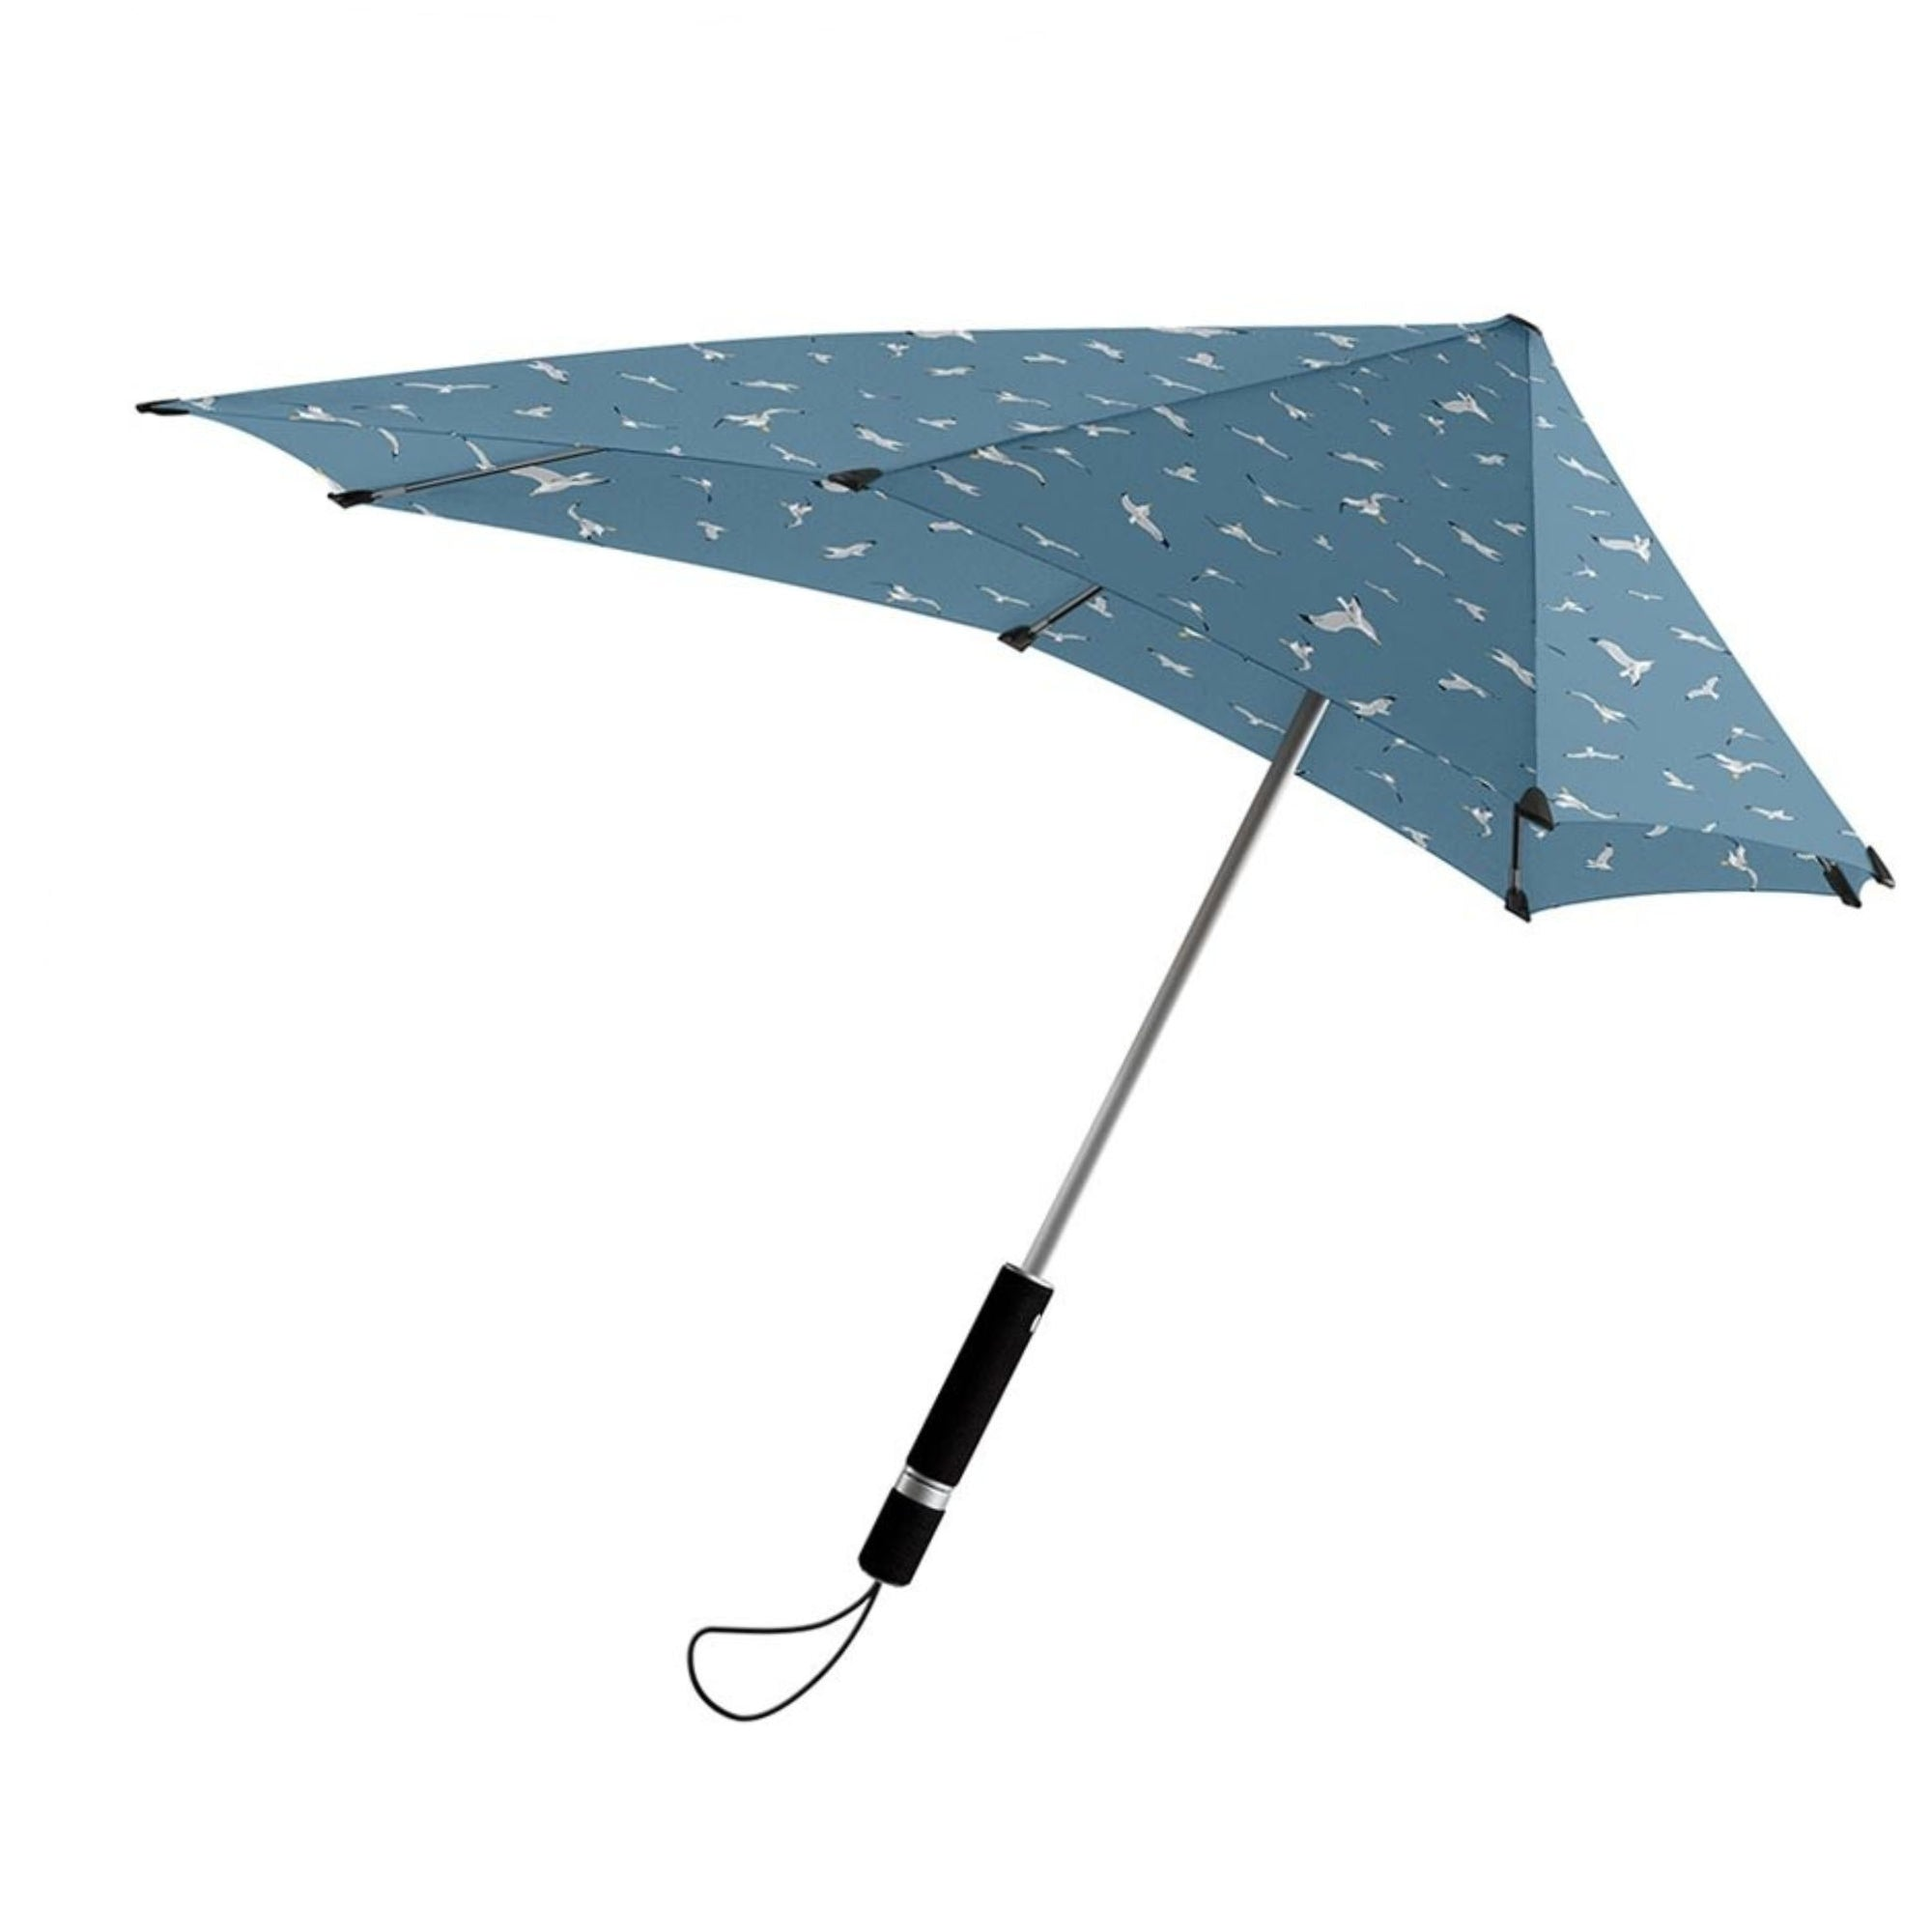 Senz° Original storm umbrella, flying high